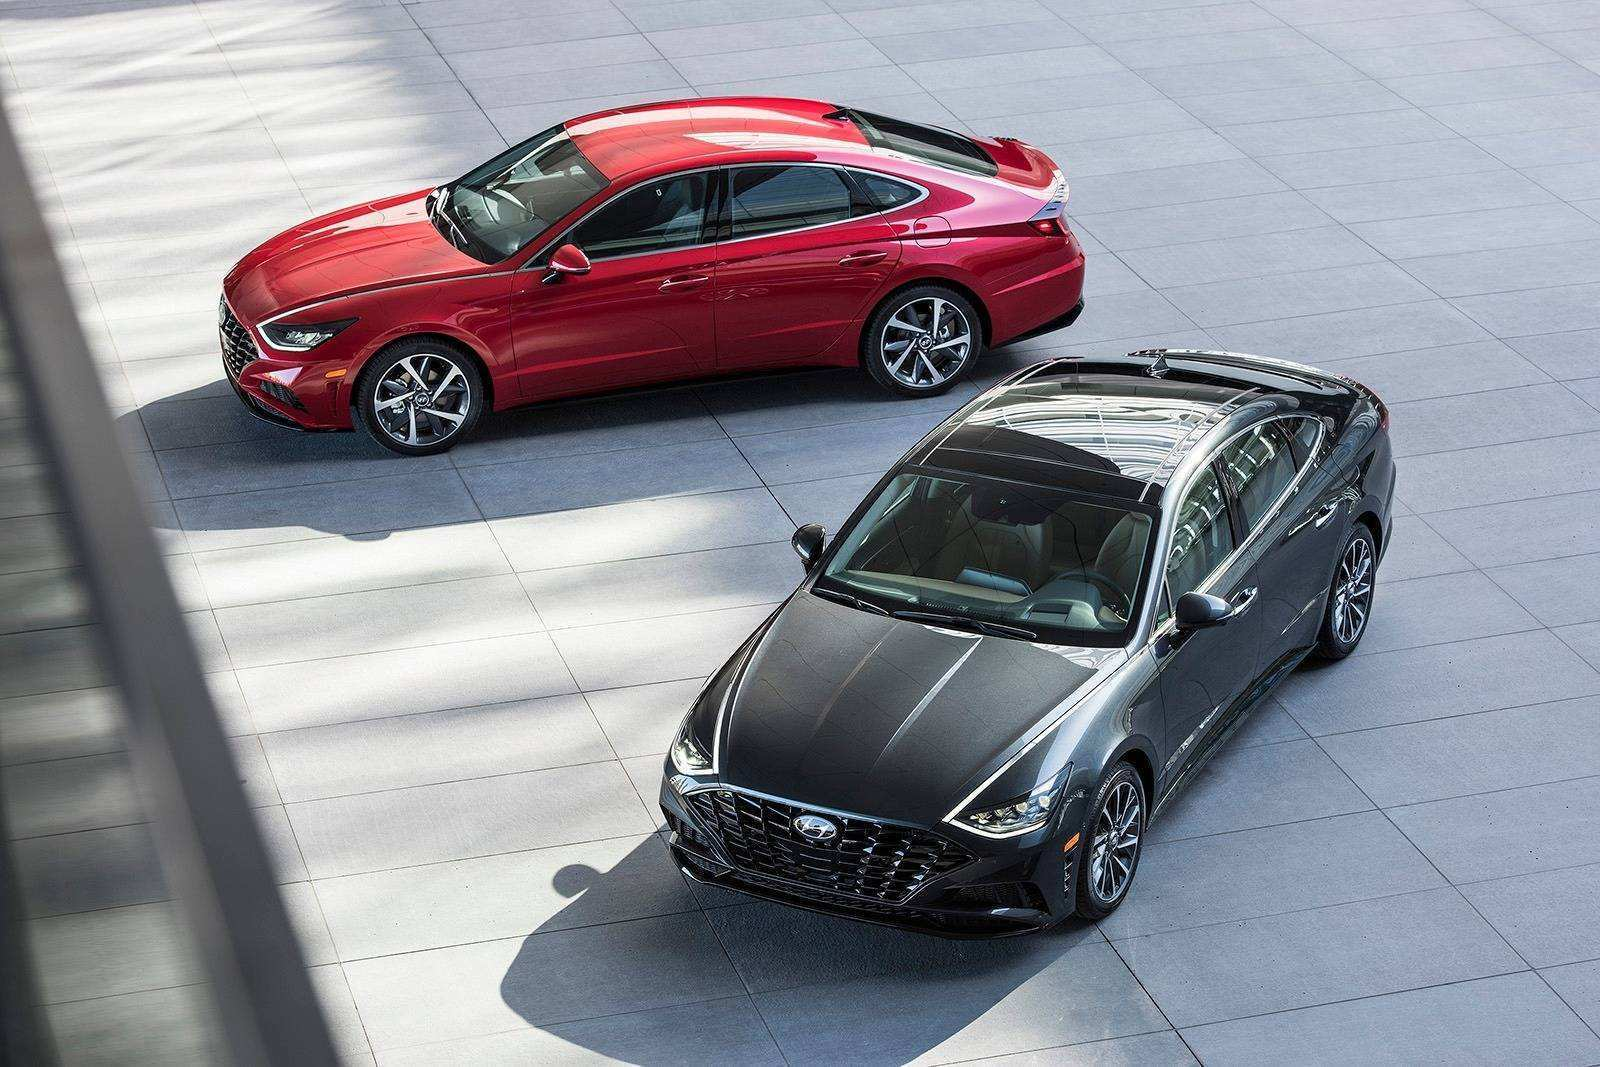 46 Best Pictures Of The 2020 Hyundai Sonata Picture